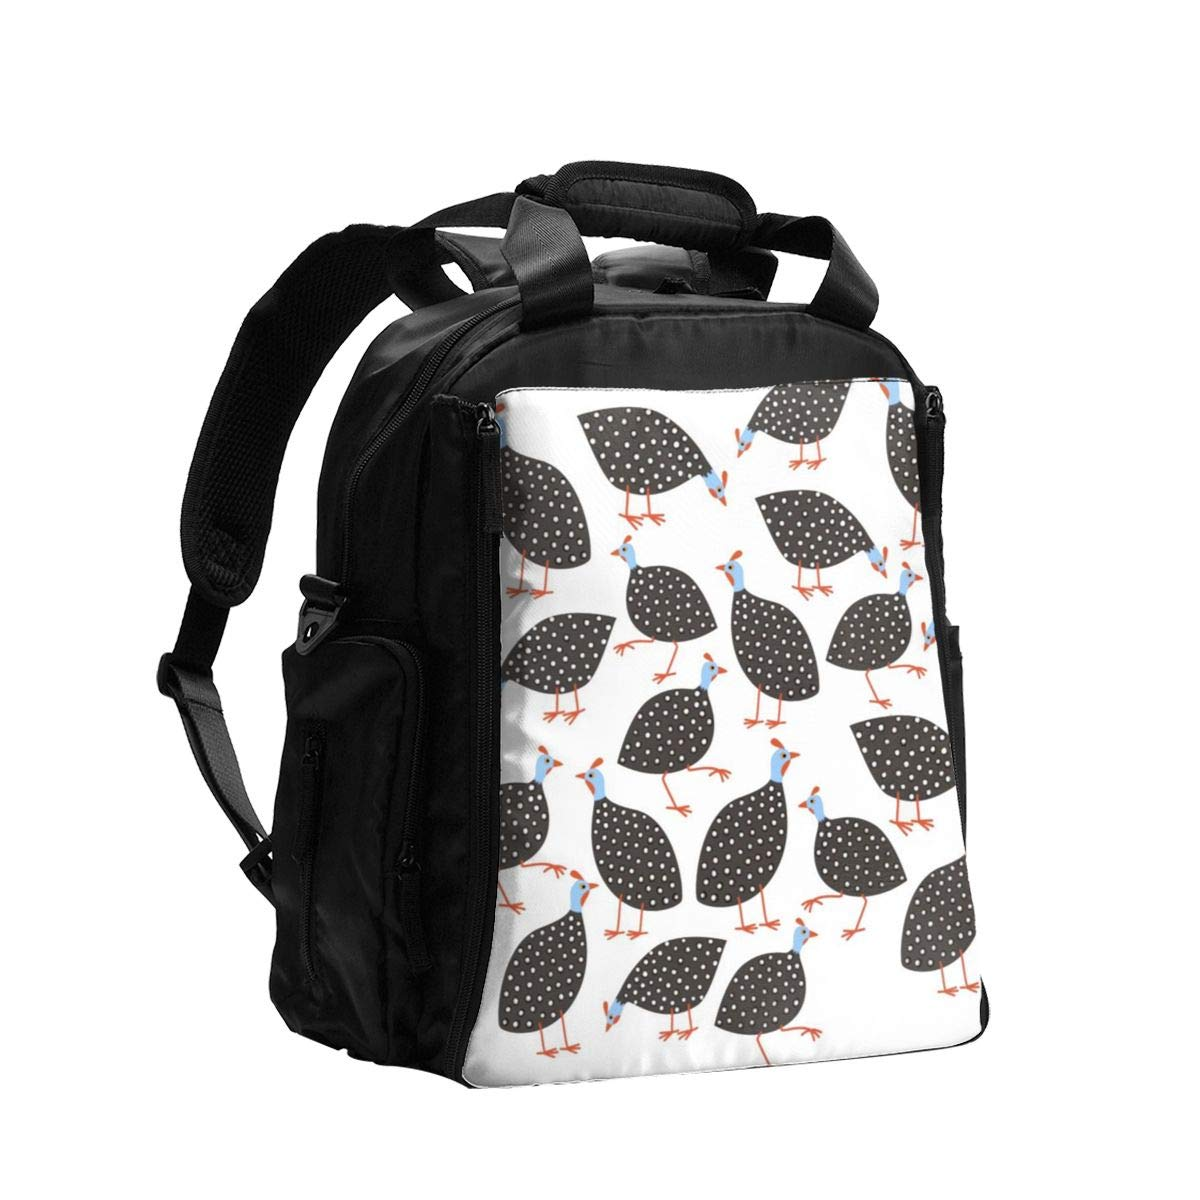 Guinea Hens Diaper Bag Backpack Travel Backpack Maternity Baby Changing Bags